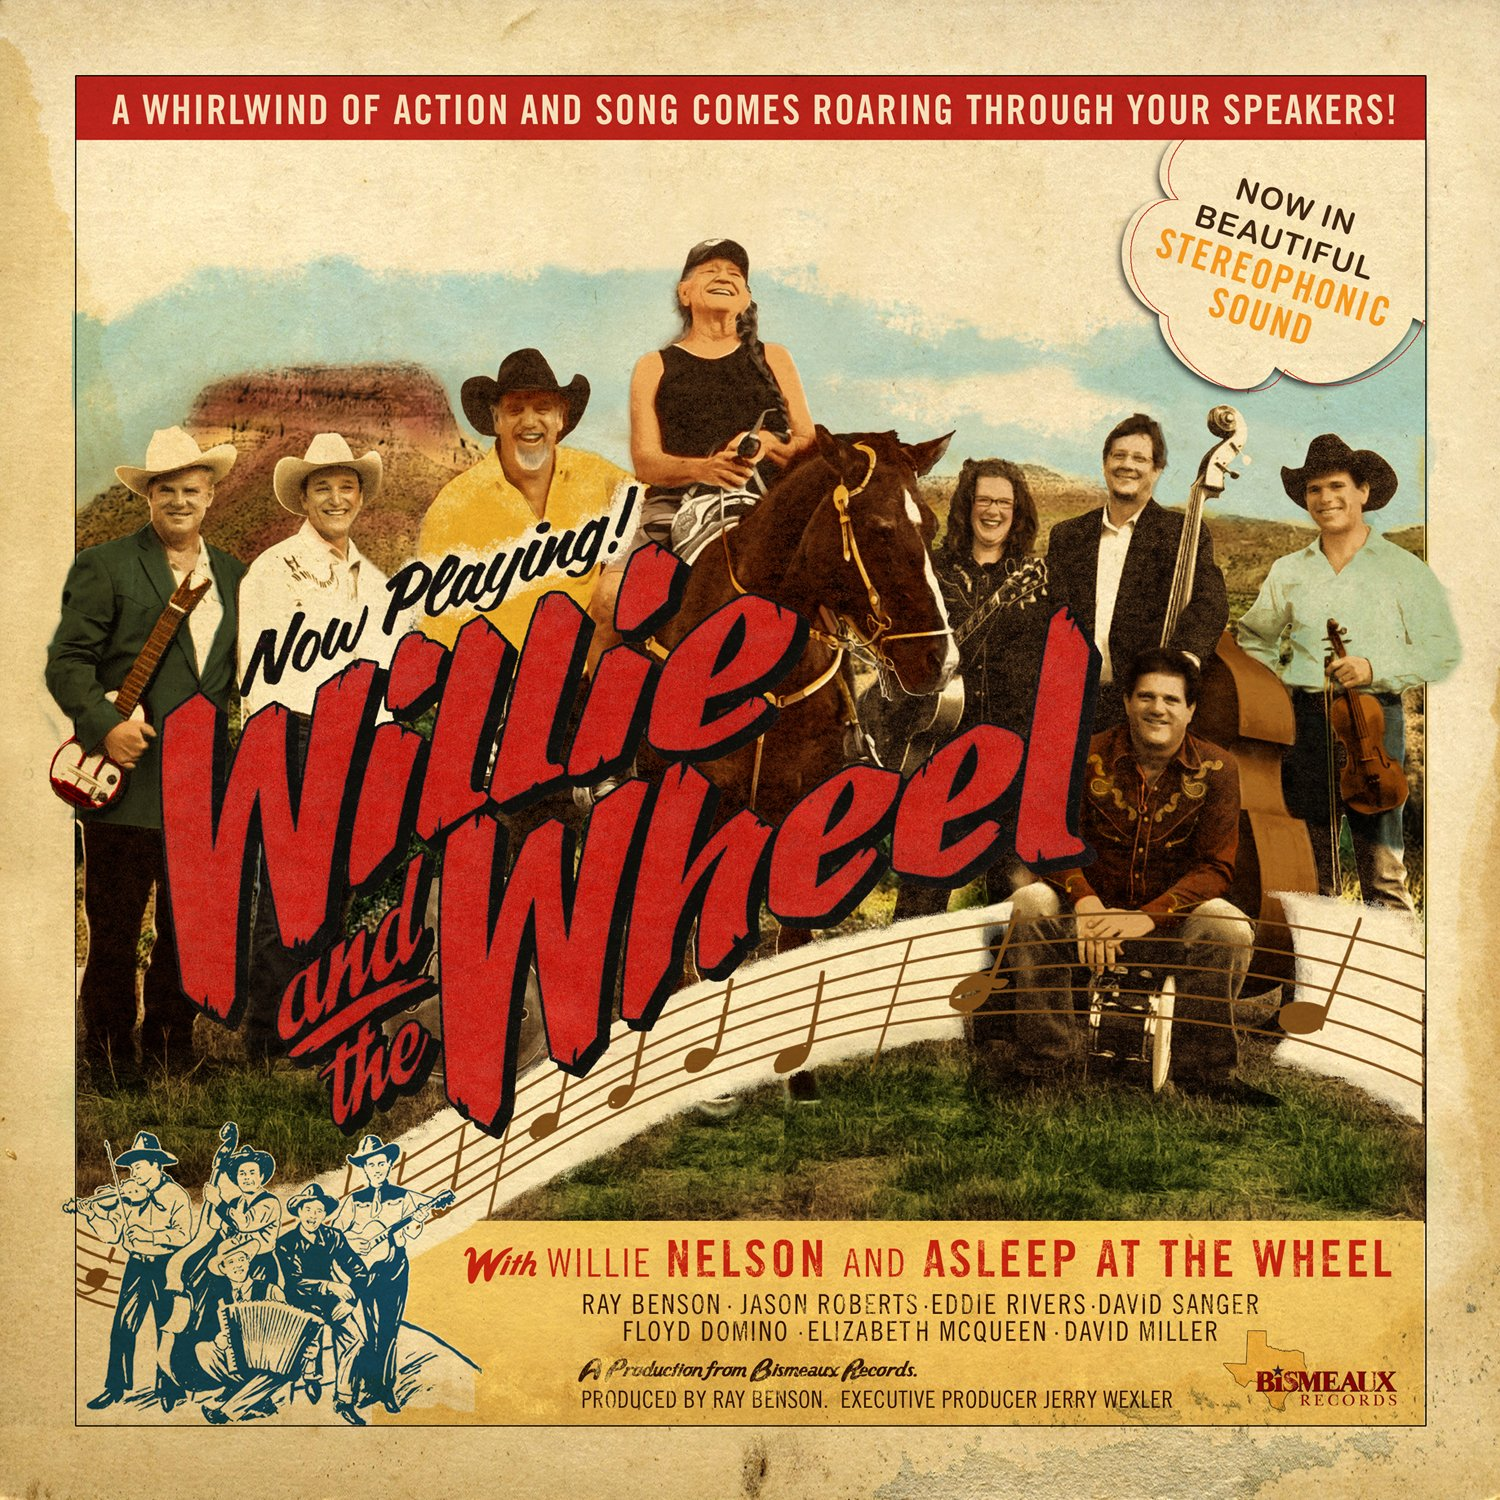 Willie & The Wheel [12 inch Analog]                                                                                                                                                                                                                                                    <span class=